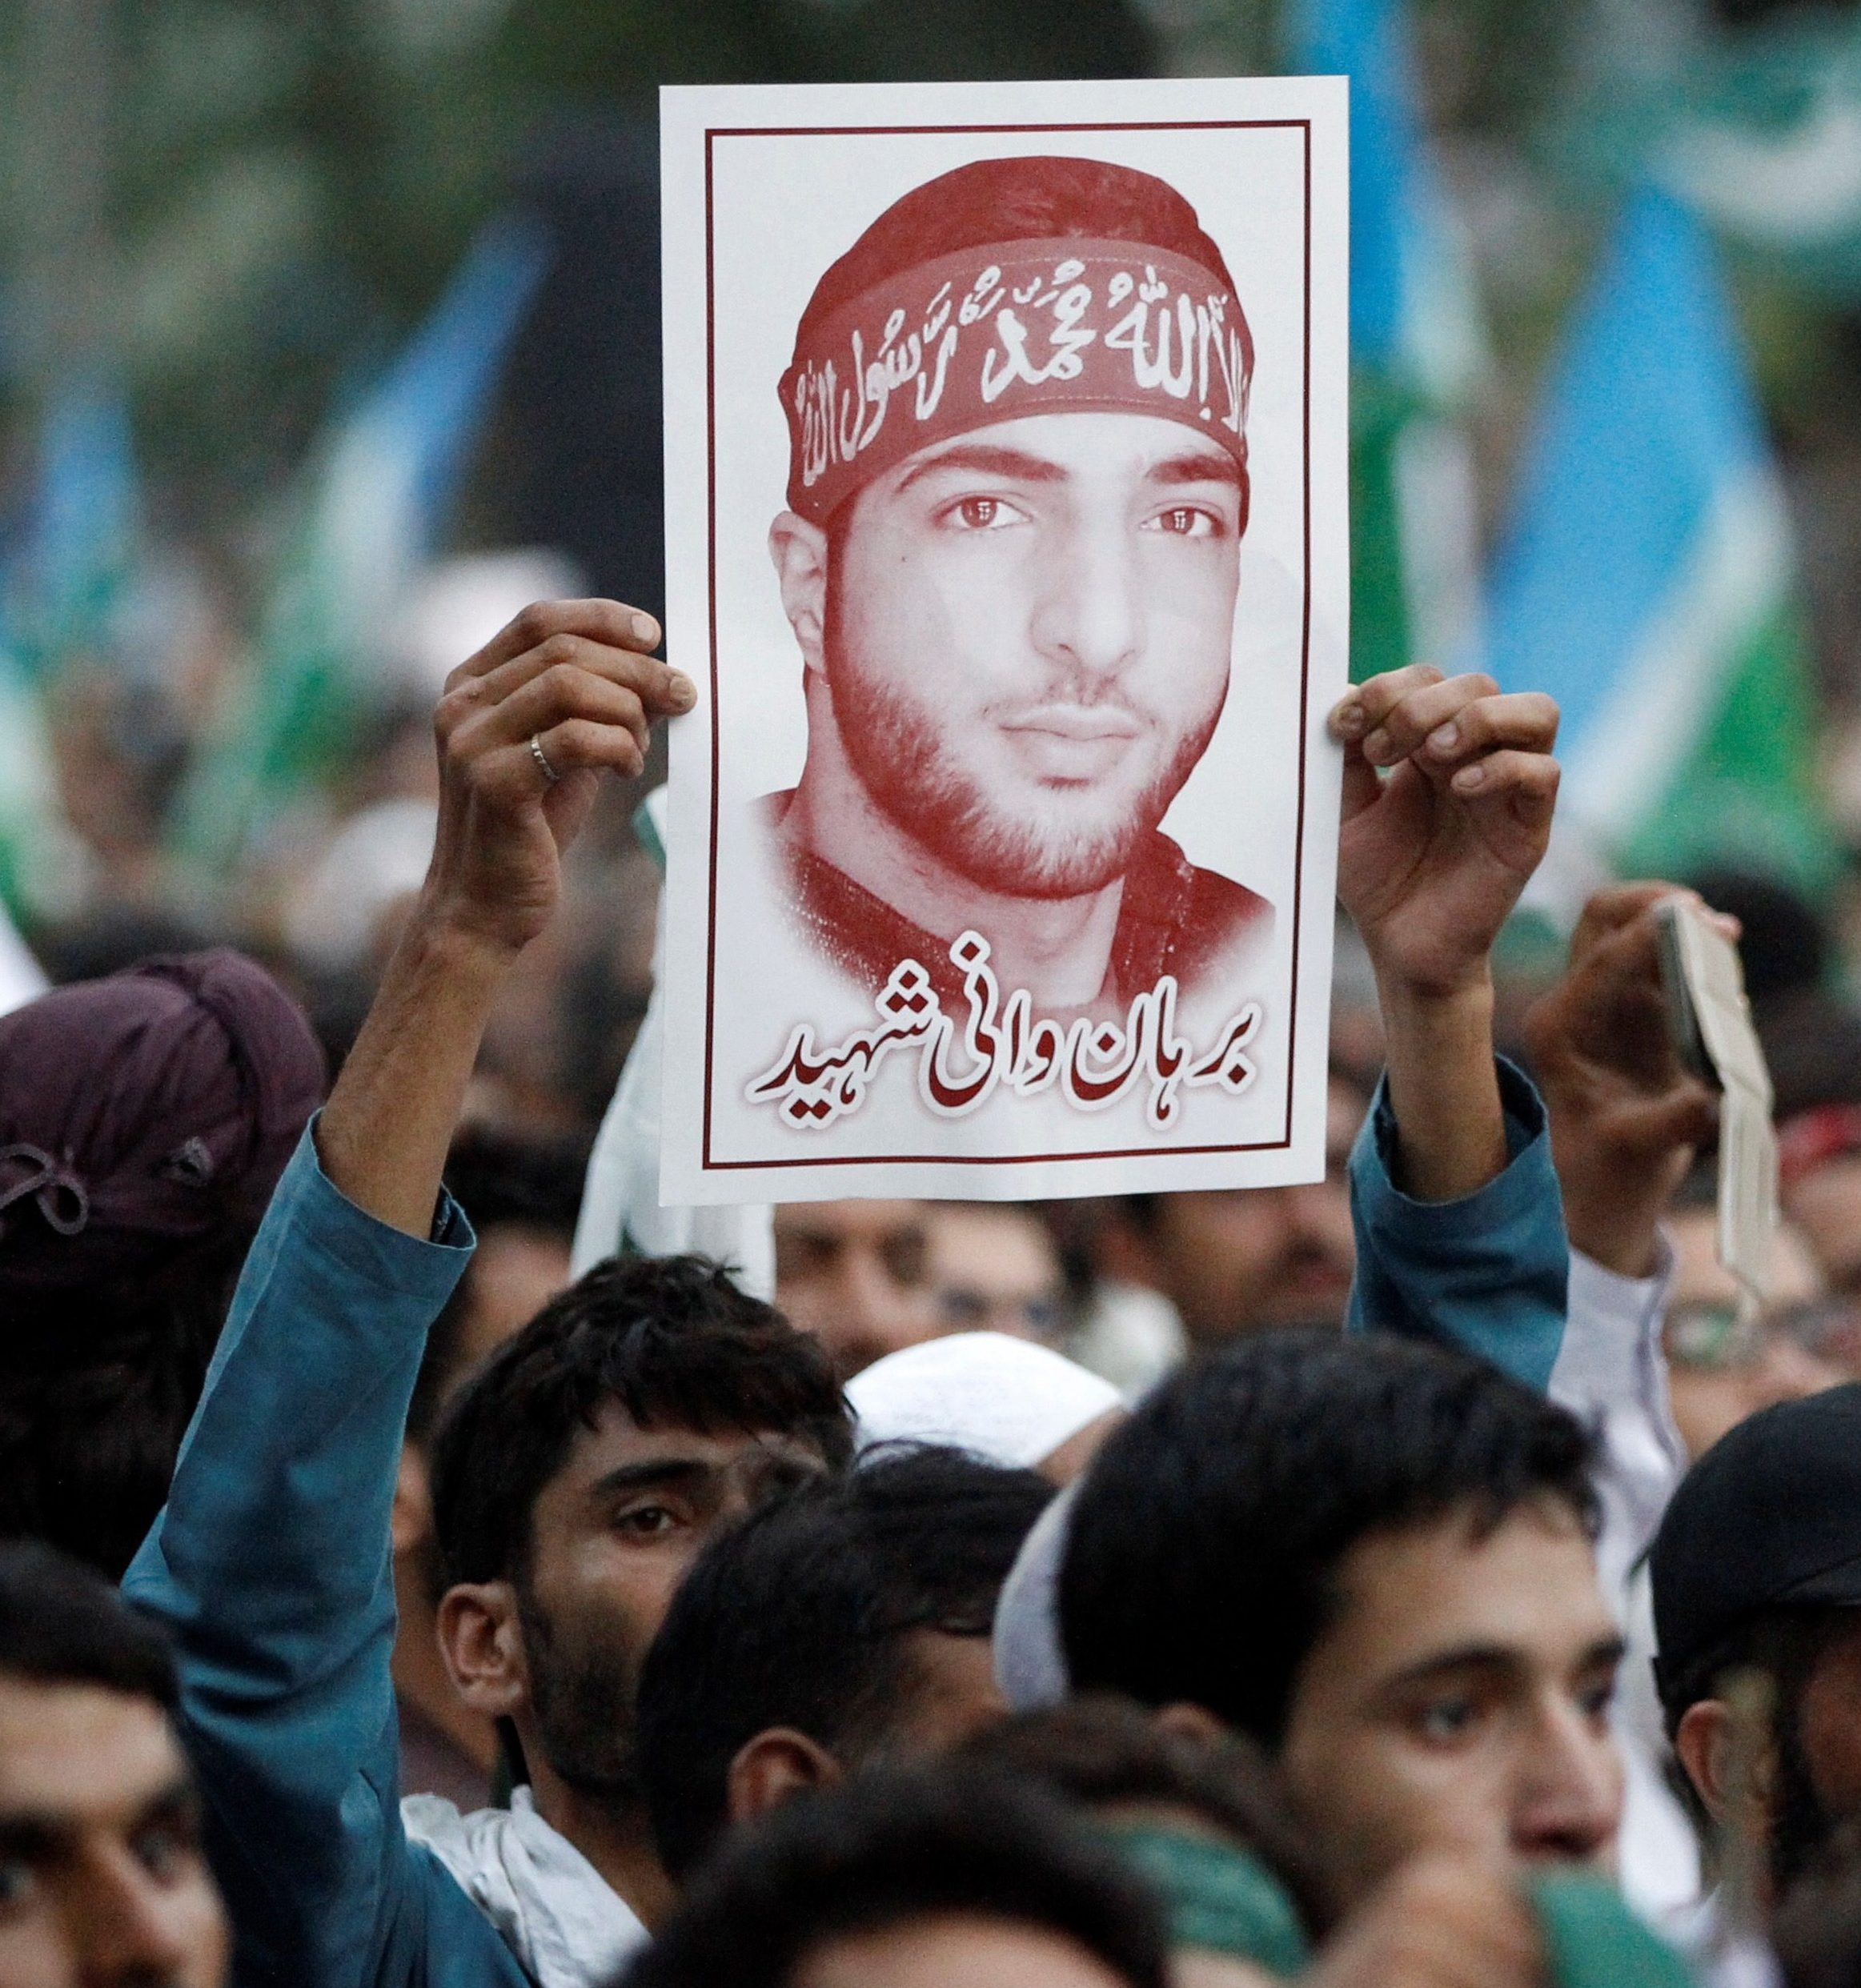 A picture of Hizbul Mujahideen commander Burhan Muzaffar Wani is held up during a rally condemning the violence in Kashmir, in Islamabad, Pakistan July 24, 2016. REUTERS/Caren Firouz - RTSJF0N